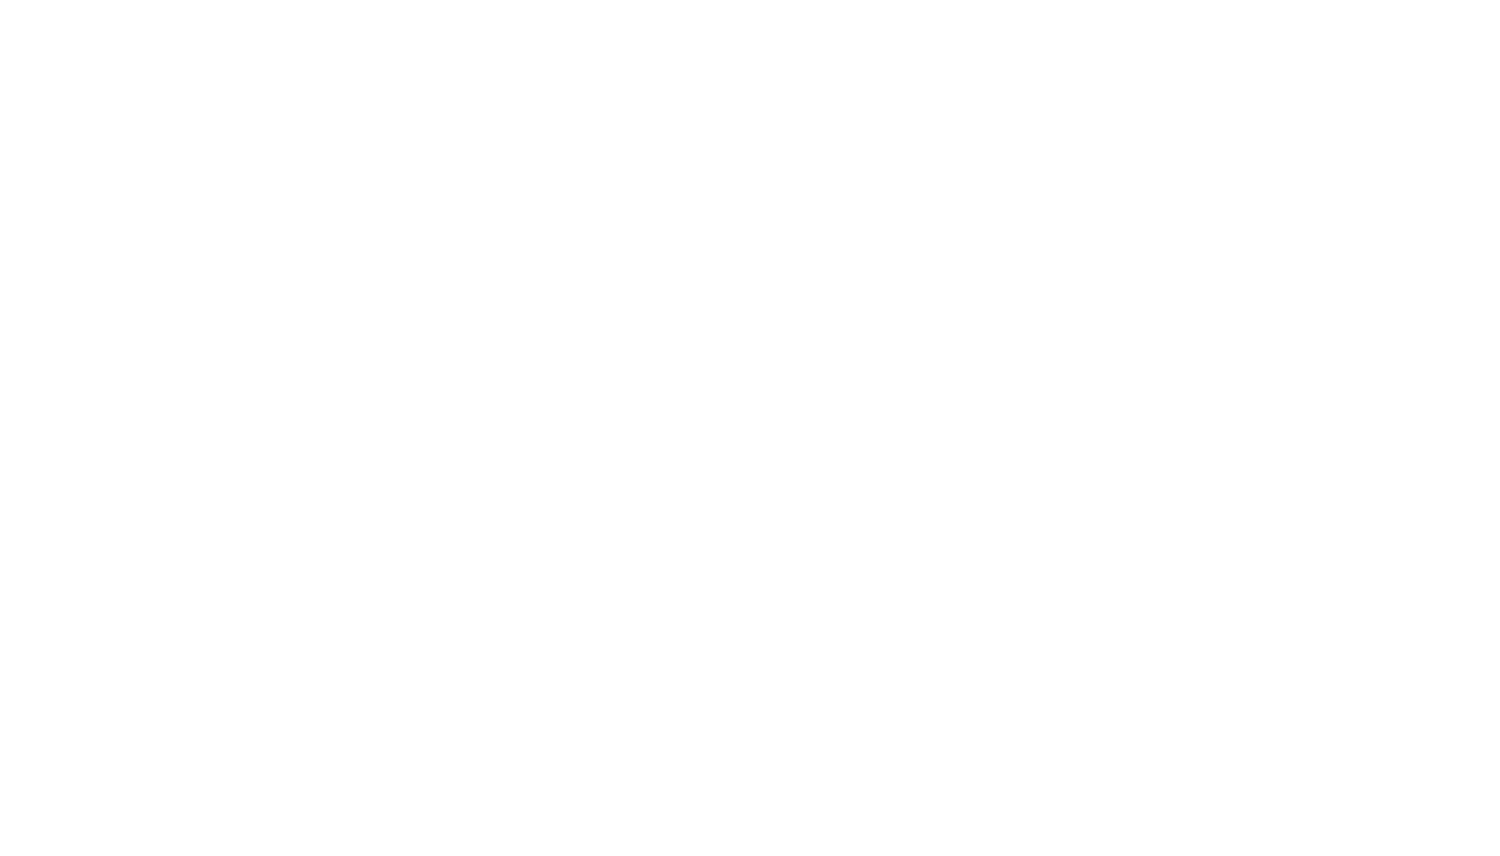 Colored Bird Institute LLC